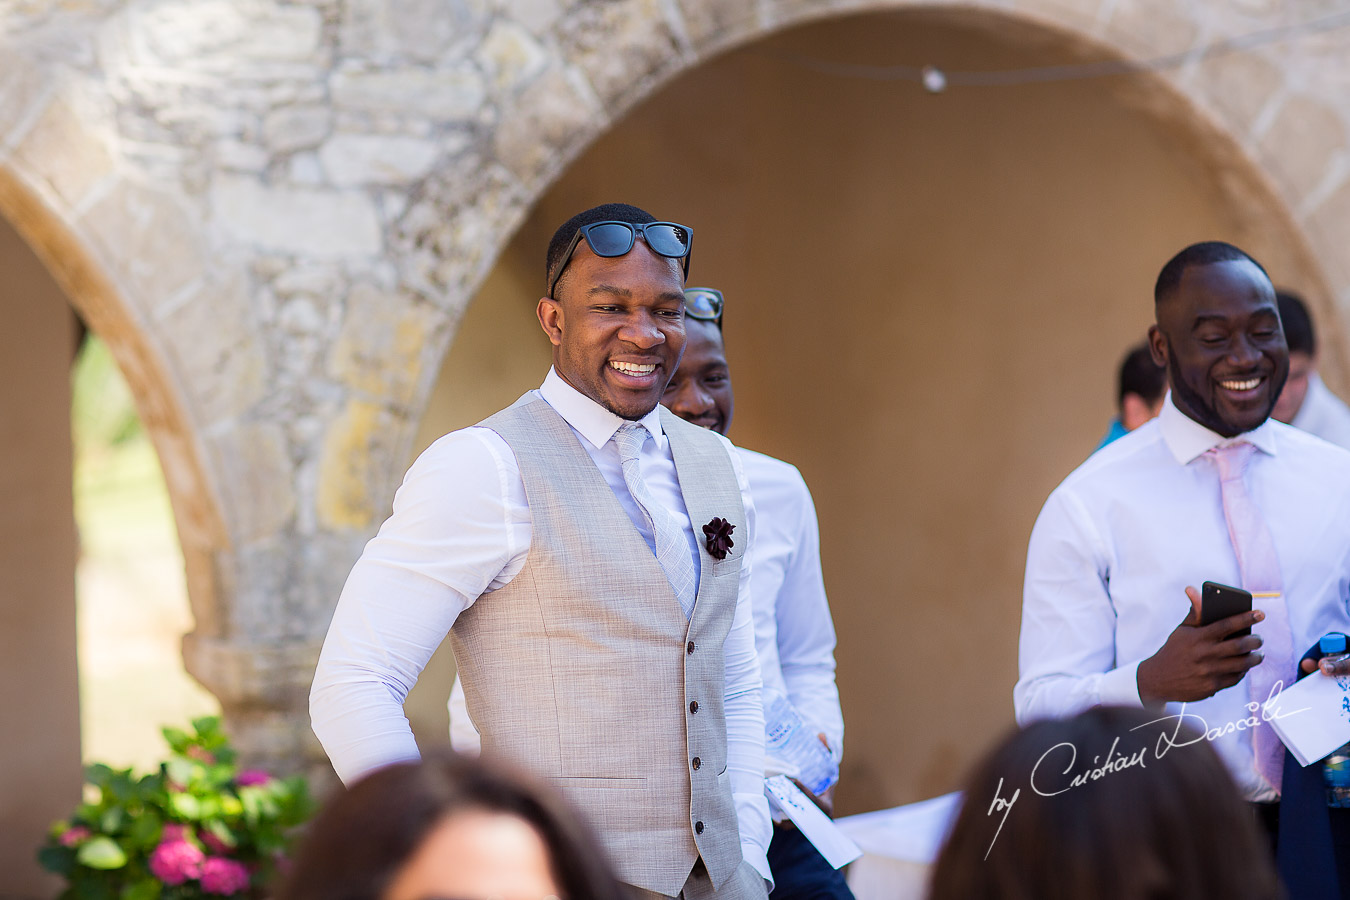 Moments with the guests captured at a wedding at Minthis Hills in Cyprus, by Cristian Dascalu.